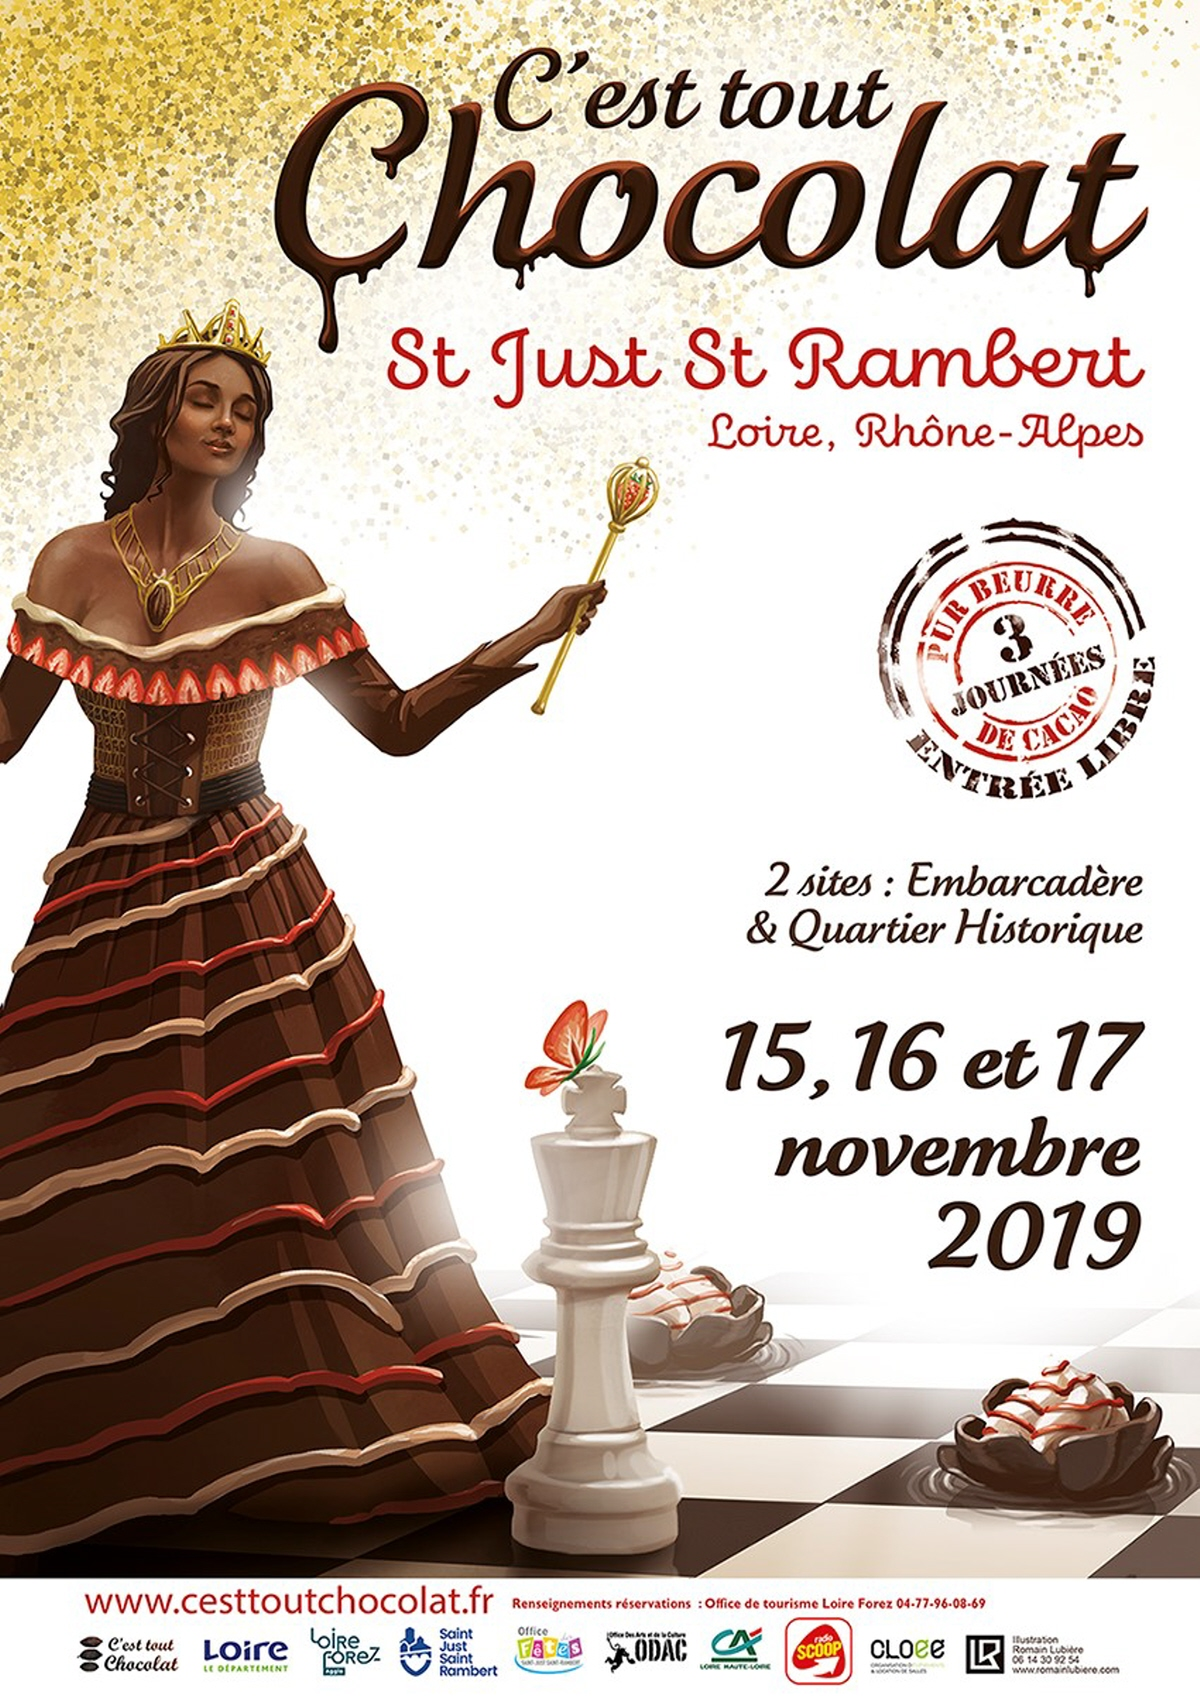 Salon c'est tout chocolat Saint Just Saint Rambert 2019